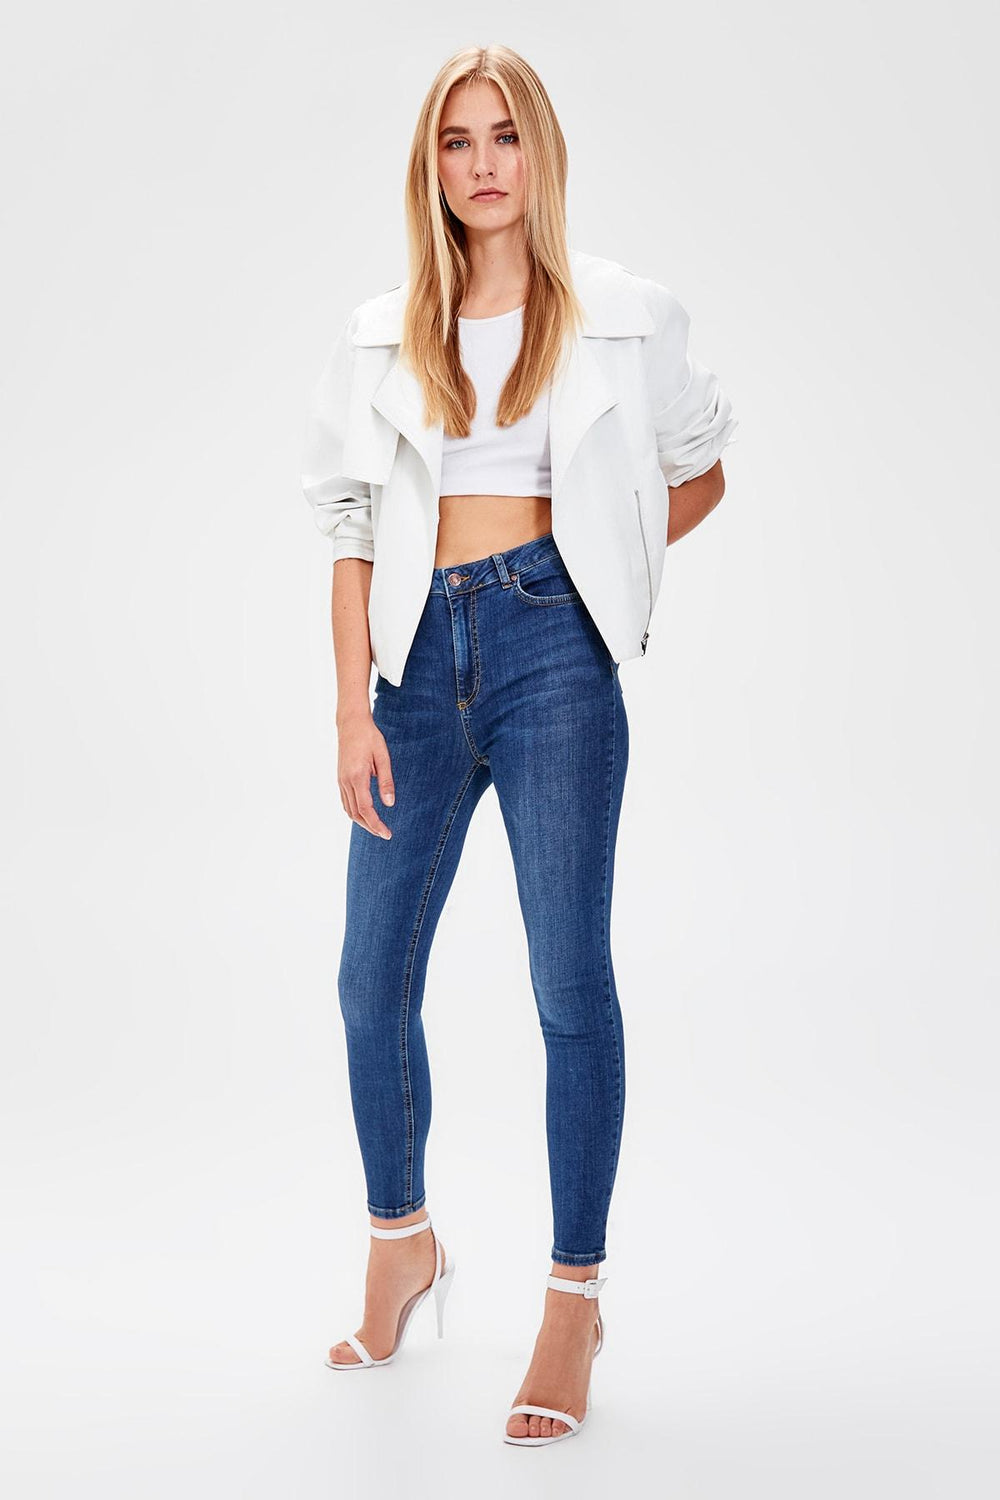 Miss Zut Miss Zut Blue High Waist Skinny Jeans Miss Zut &CO